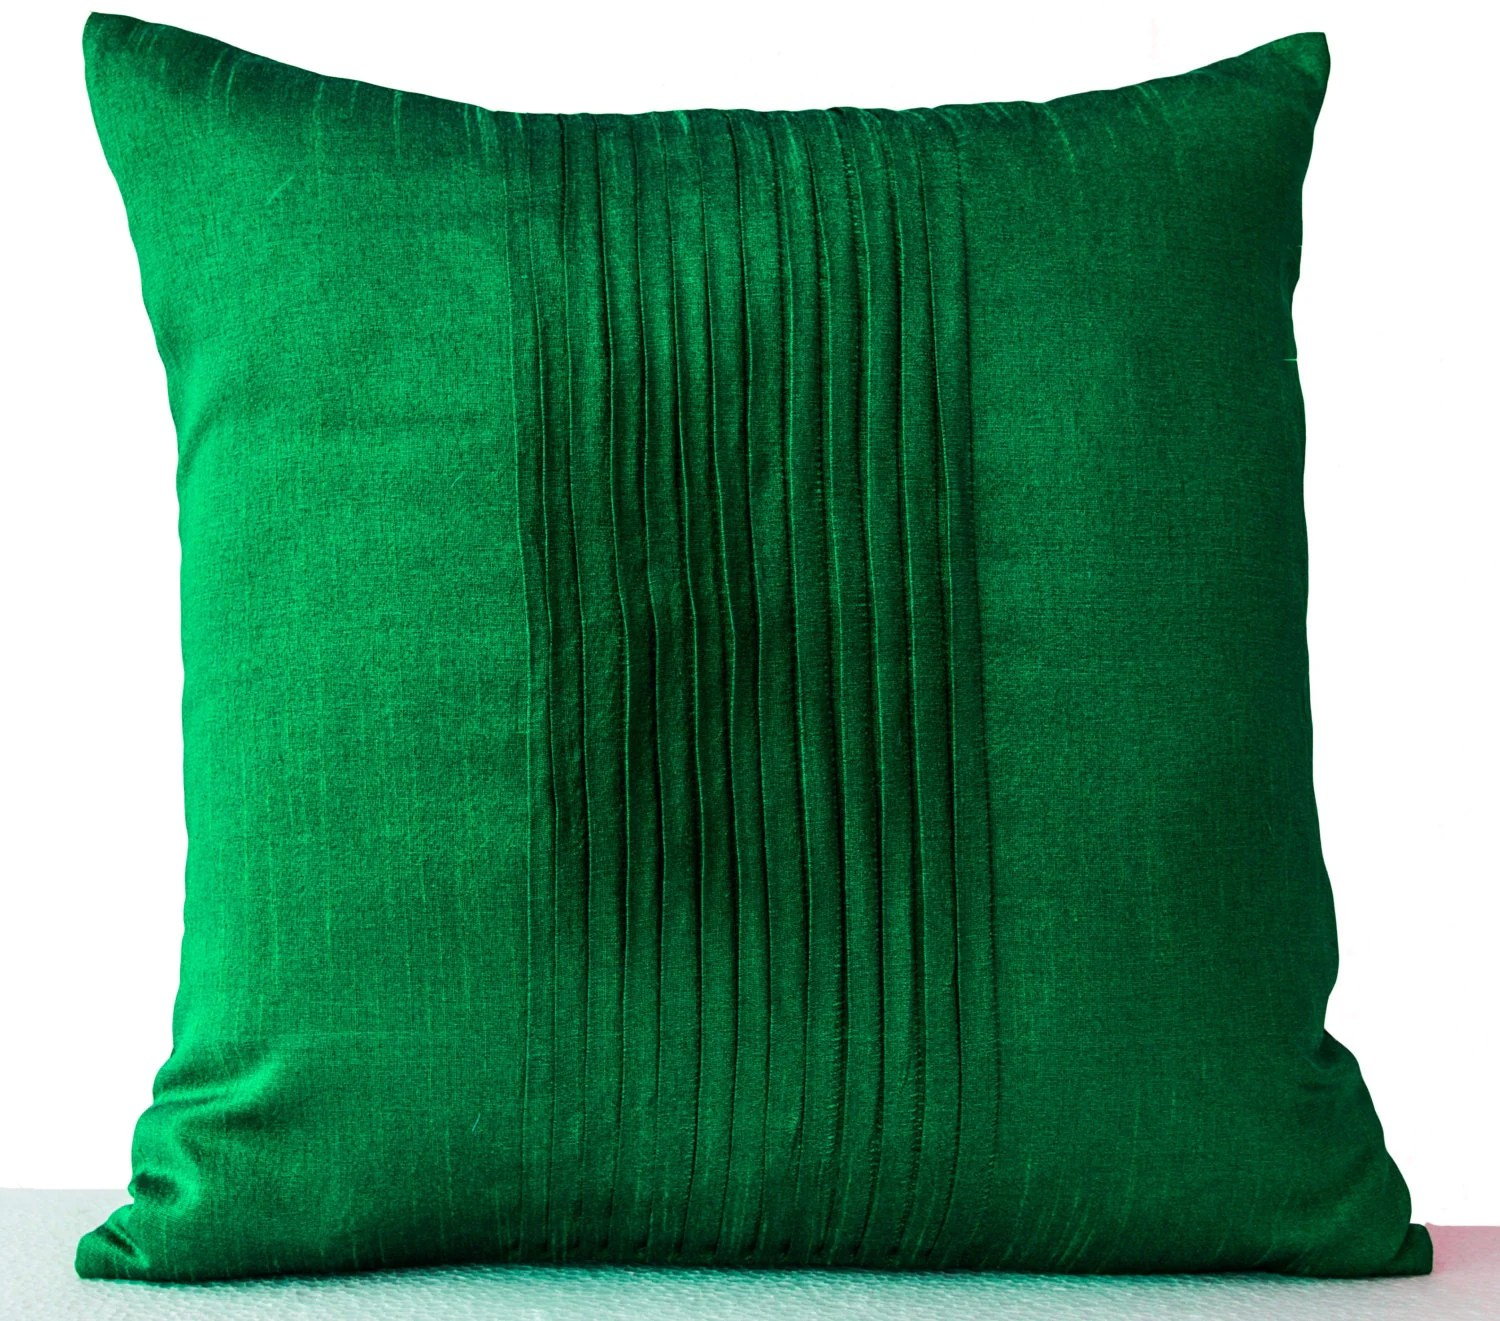 Best Decorative Pillow For Couch Throw Pillows In Emerald Green This Month